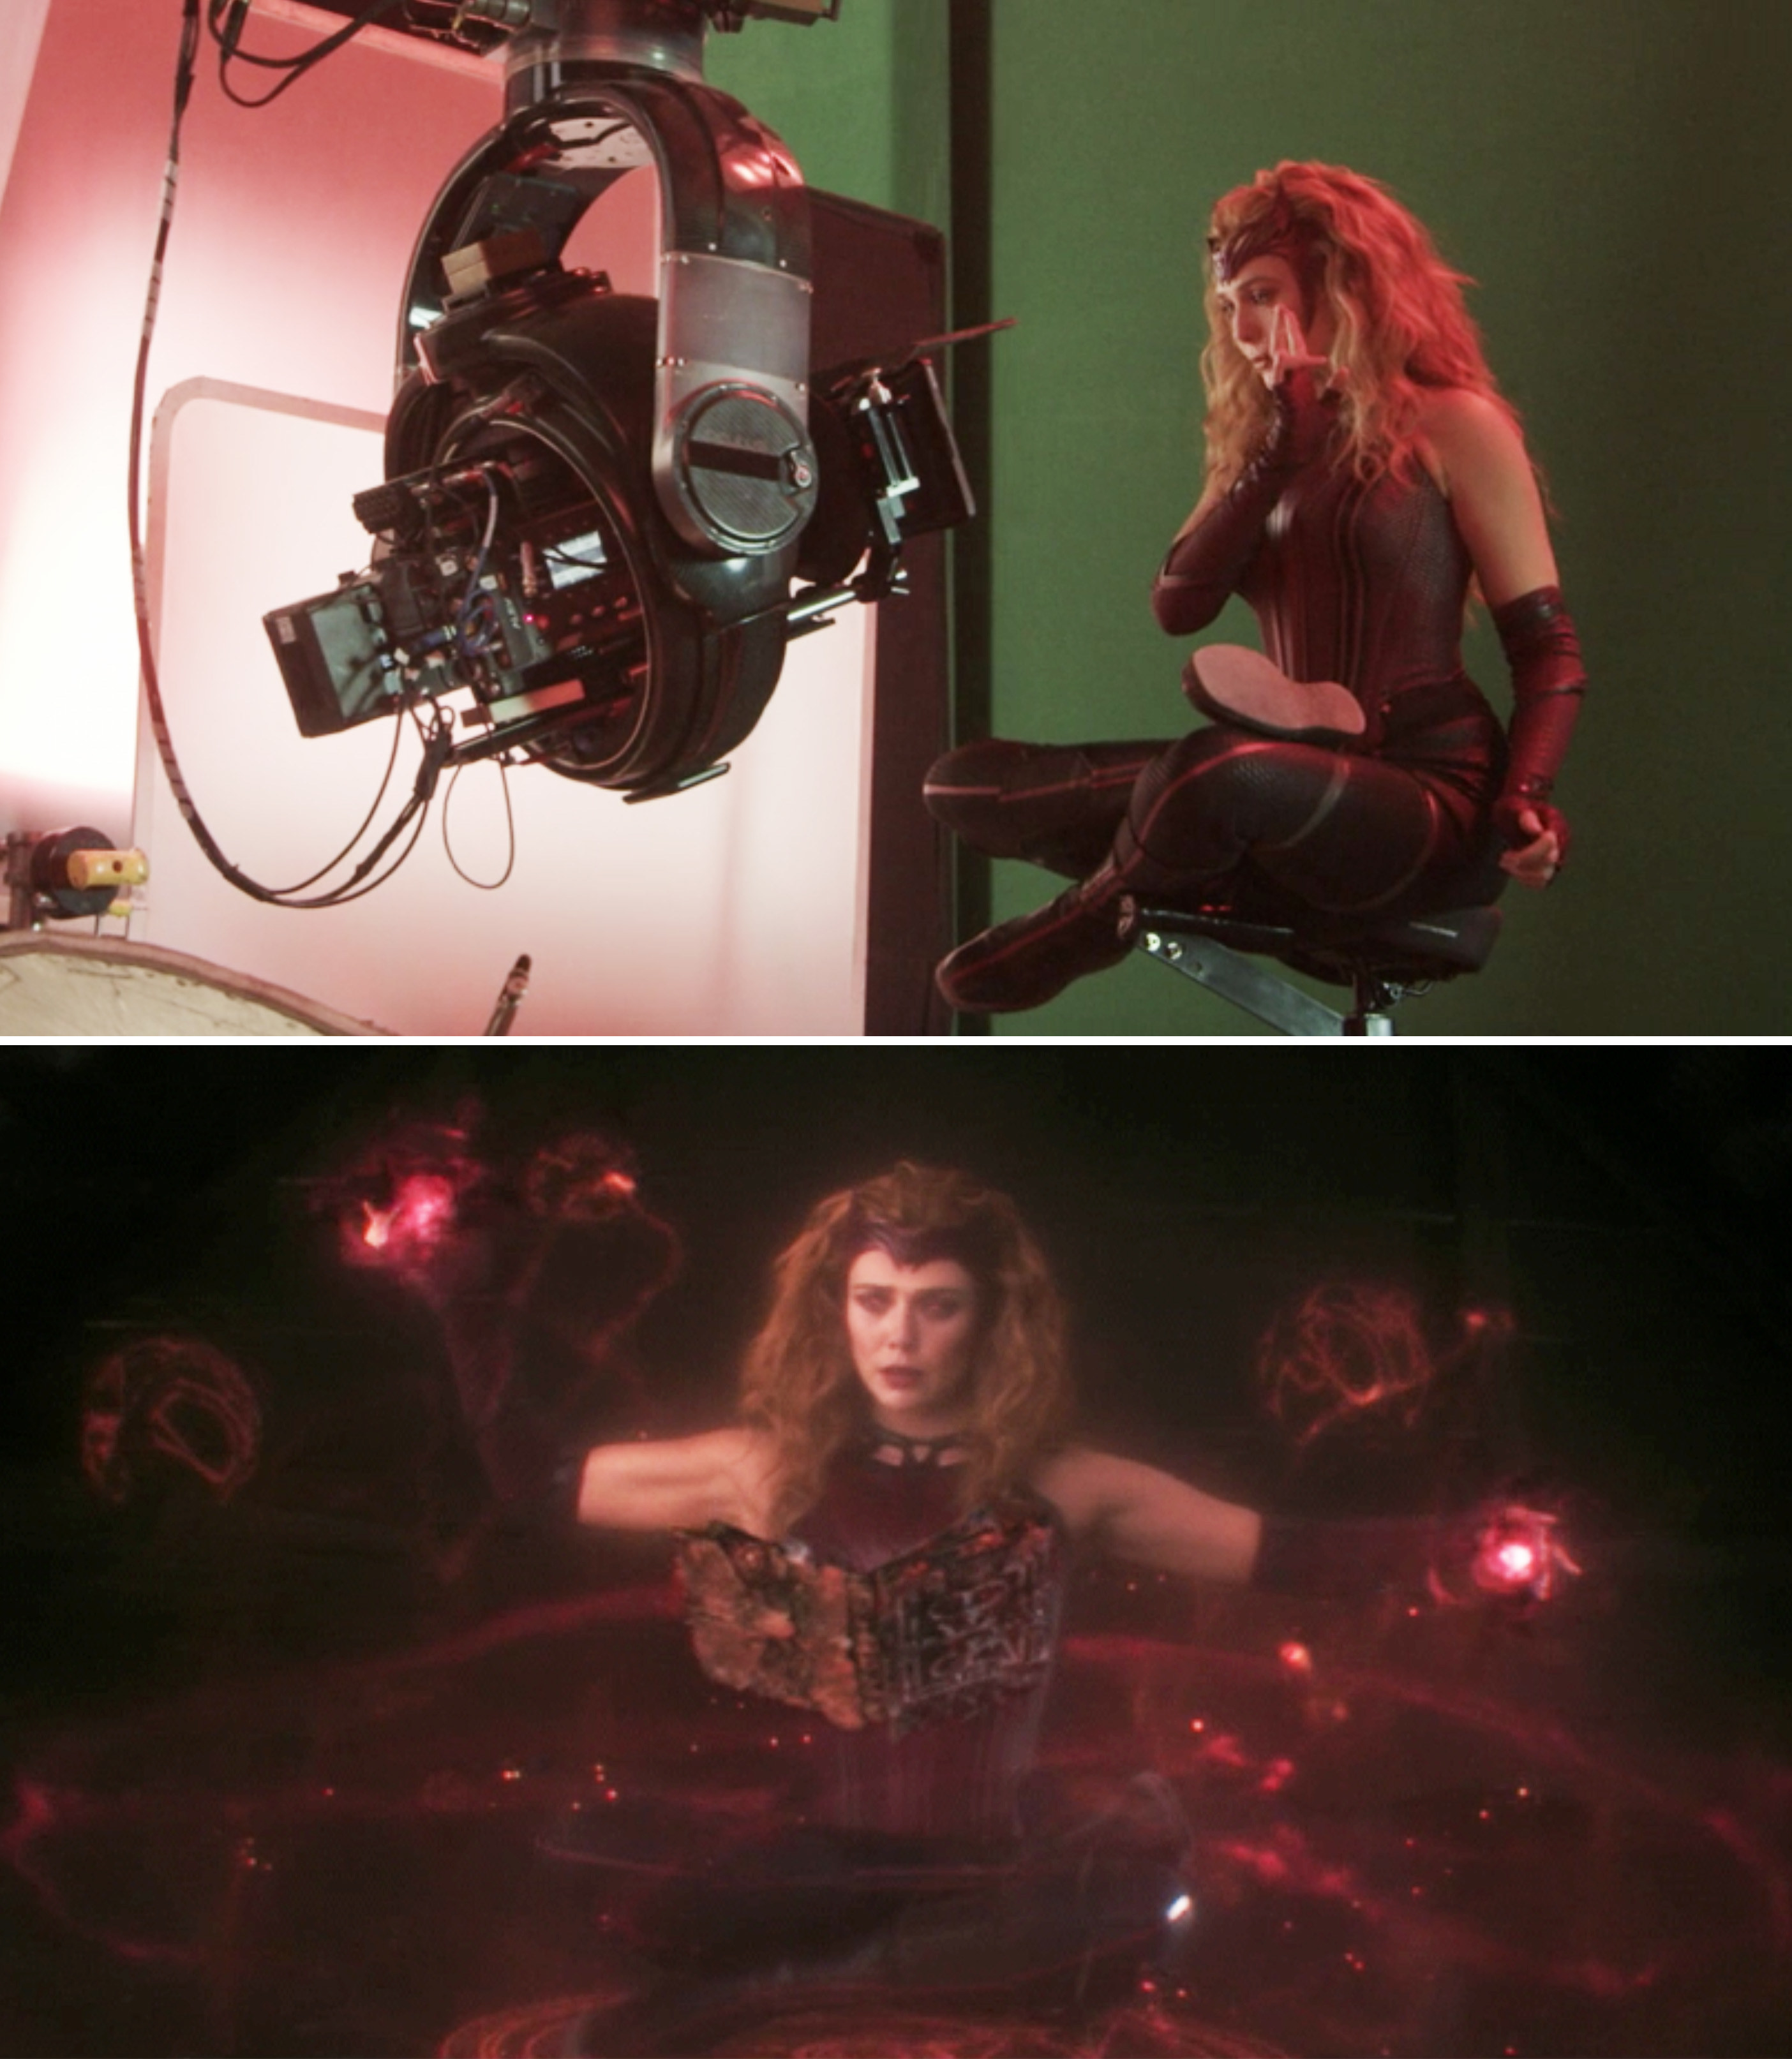 Elizabeth Olsen on a green screen vs the final shot with visual effects